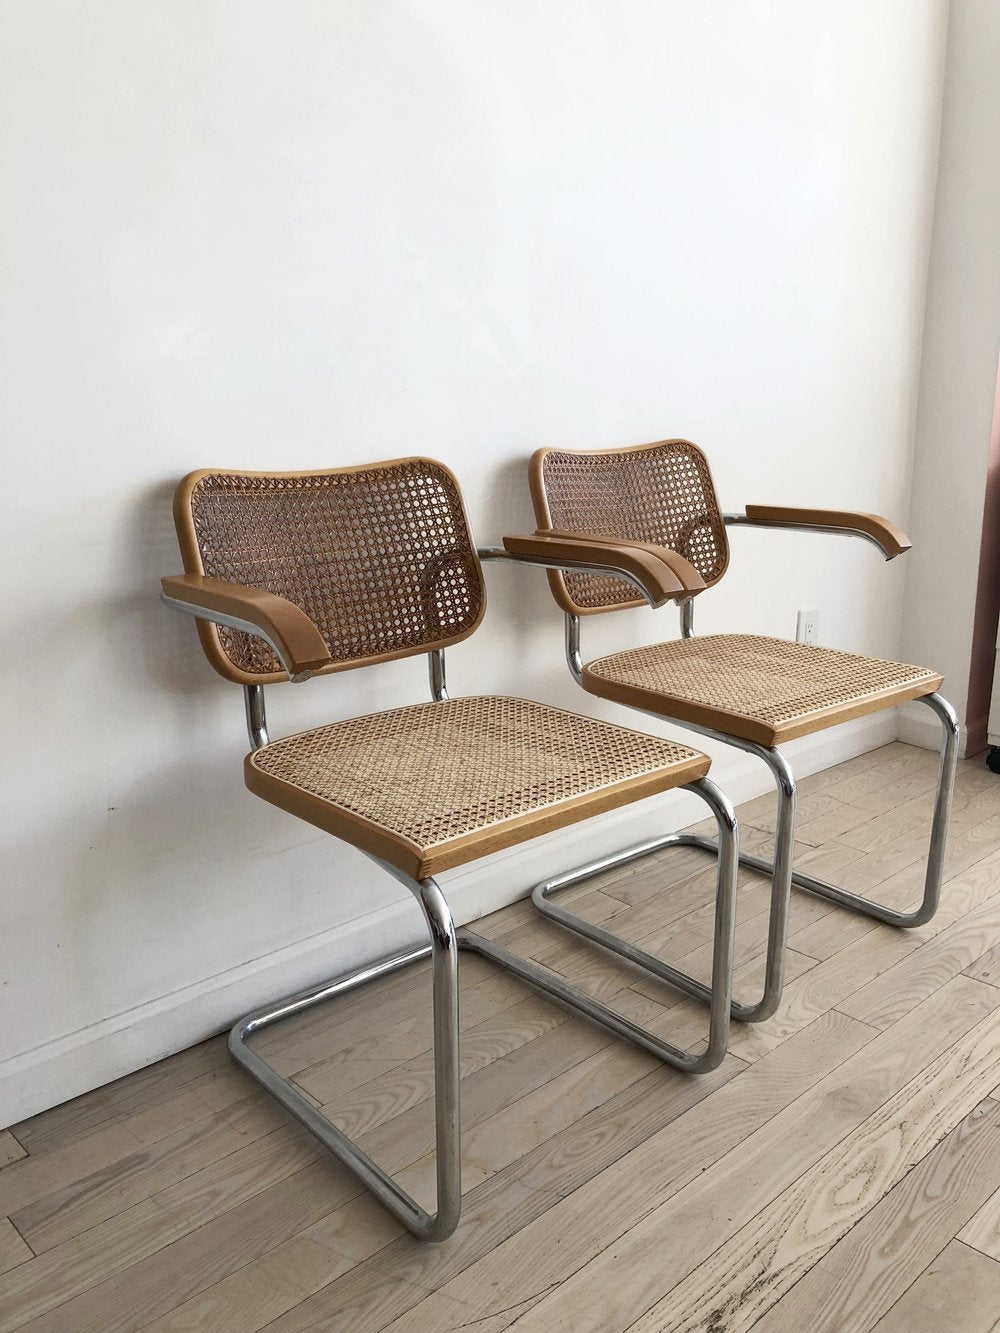 1973 Marcel Breuer Cane Cesca Armed Chairs by Knoll Produced by Gavina - PAIR